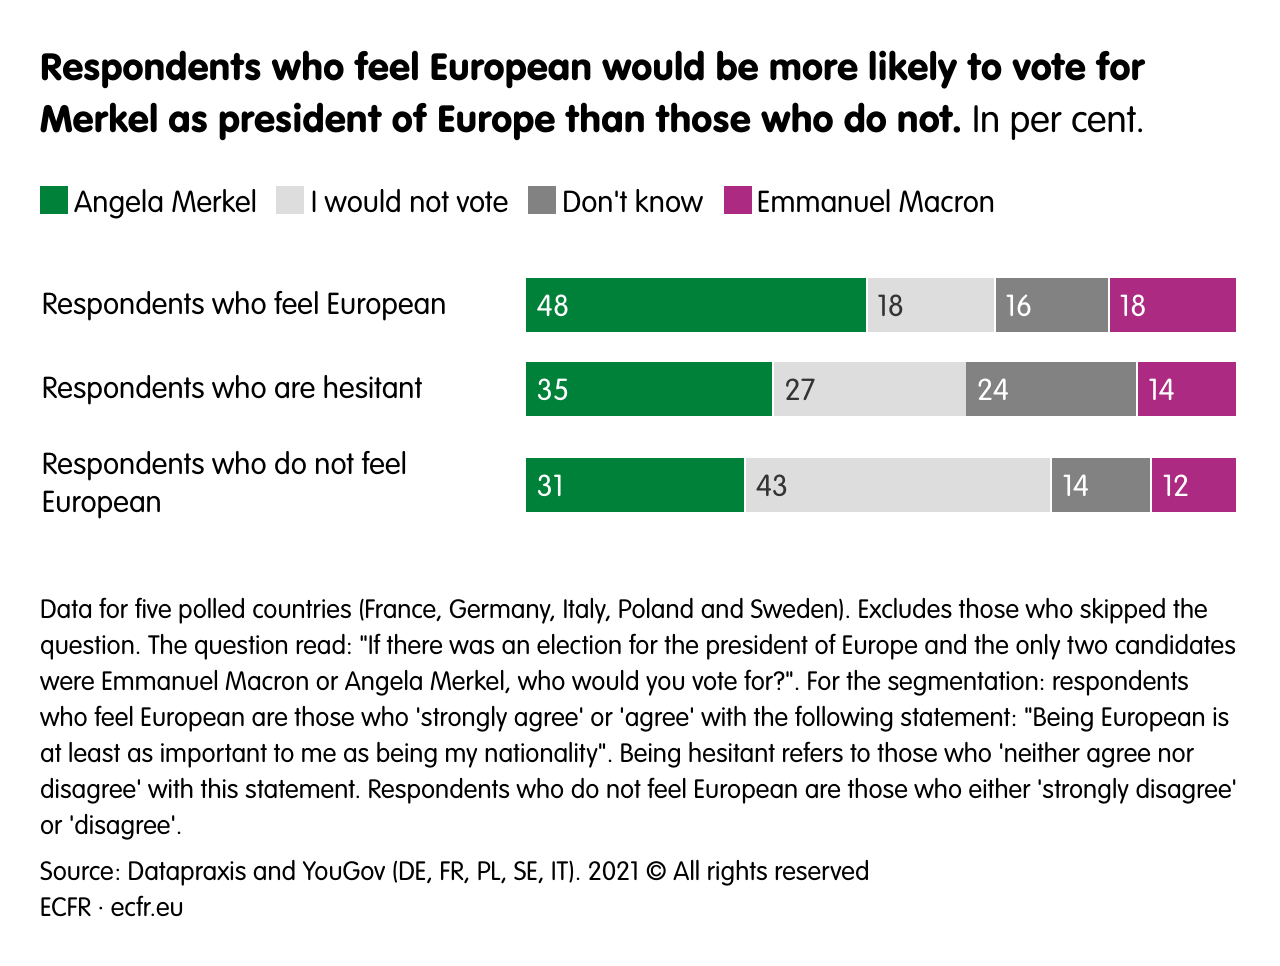 Respondents who feel European would be more likely to vote for Merkel as president of Europe than those who do not.